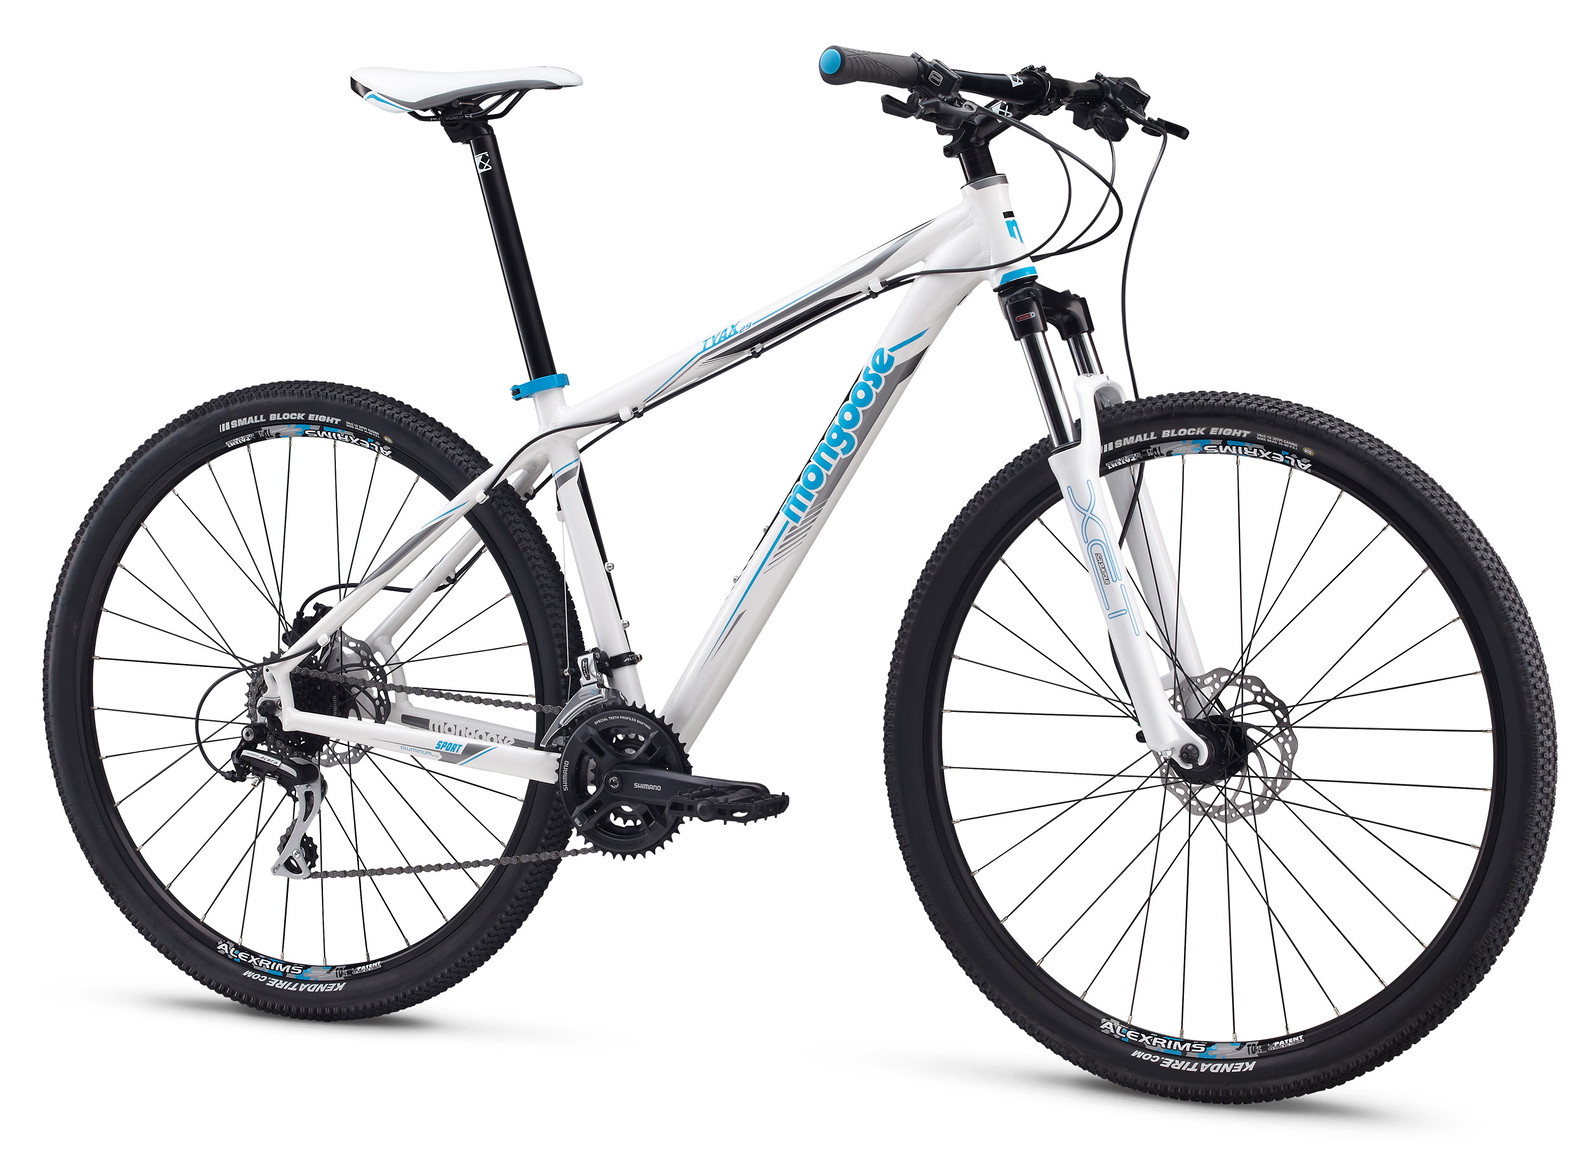 2014 Mongoose Tyax Sport 29 Bike - Reviews, Comparisons ...